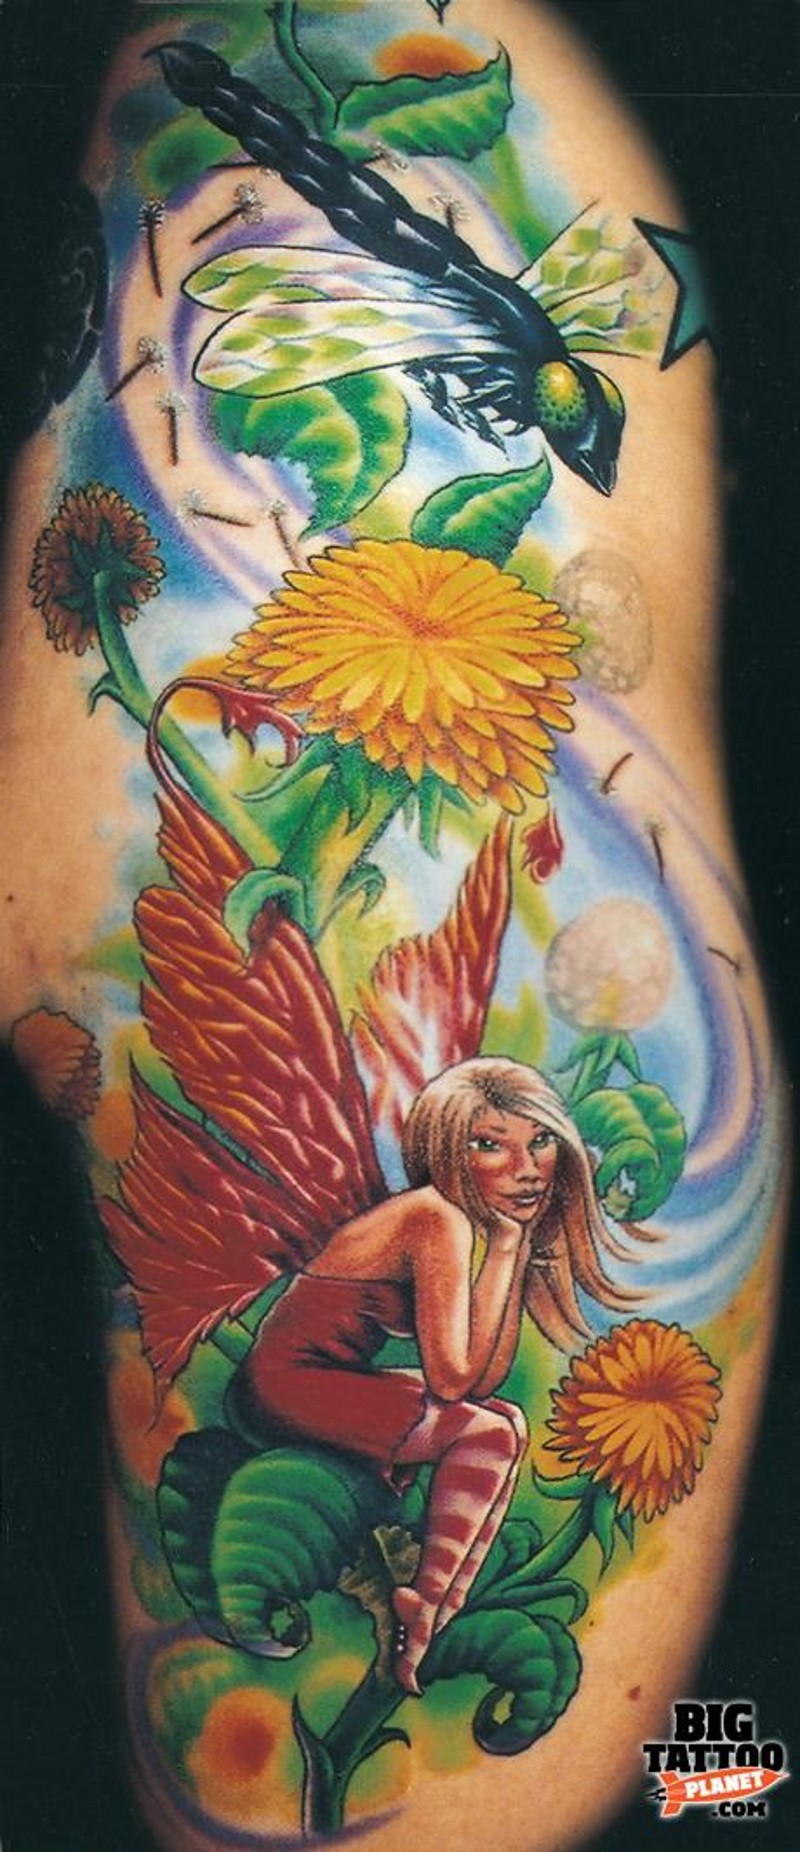 Beautiful fantasy world Tinkerbell tattoo on shoulder with flowers and dragonfly